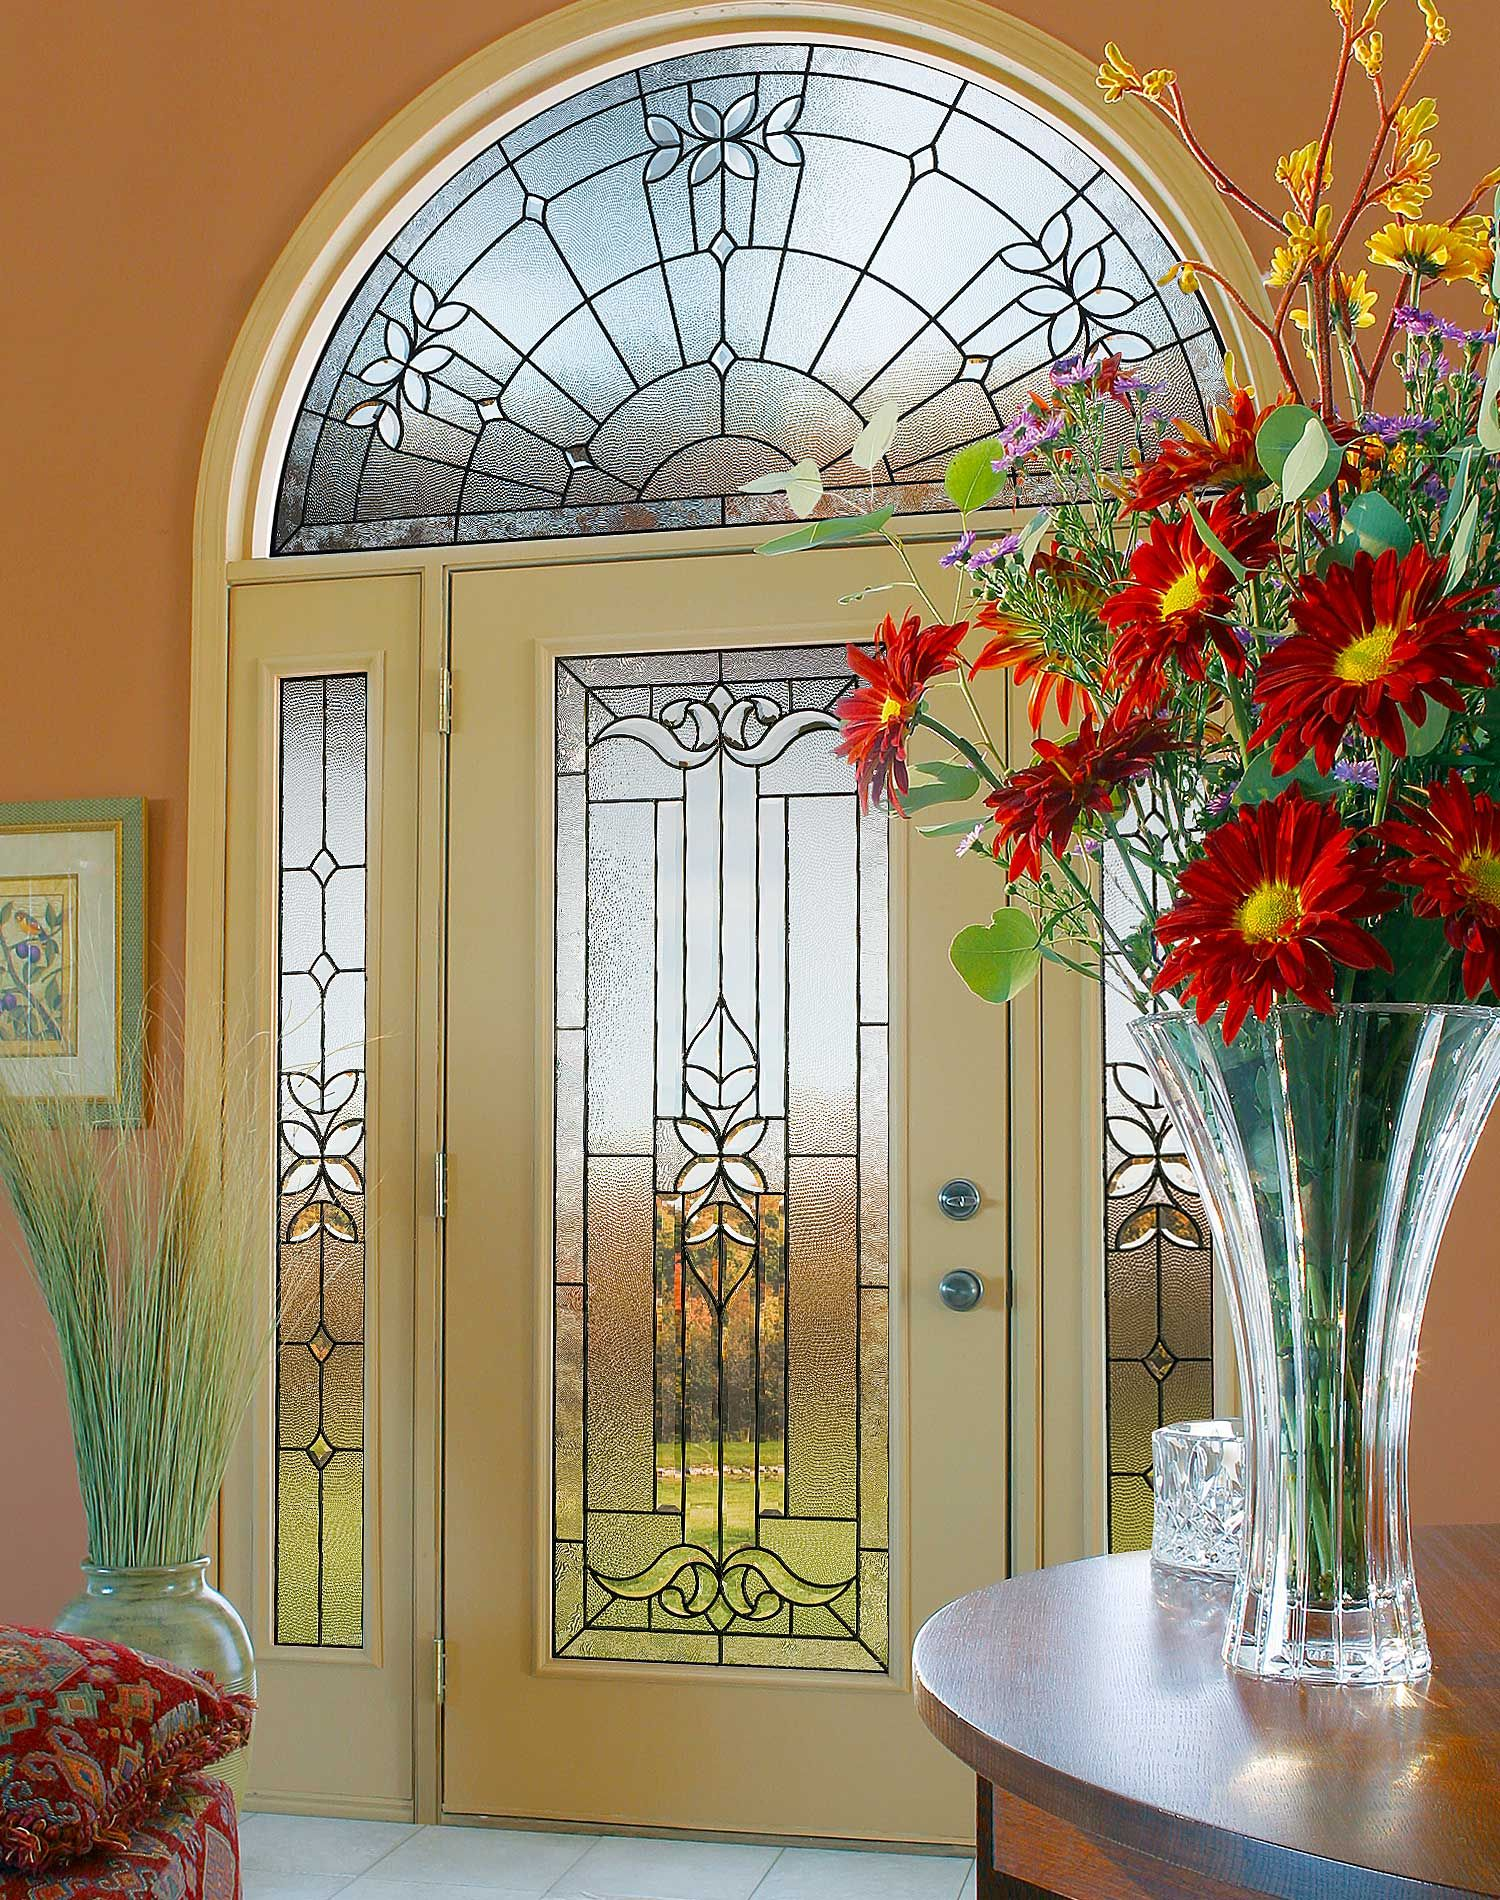 ODL Cadence Decorative Door Glass ODL Cadence